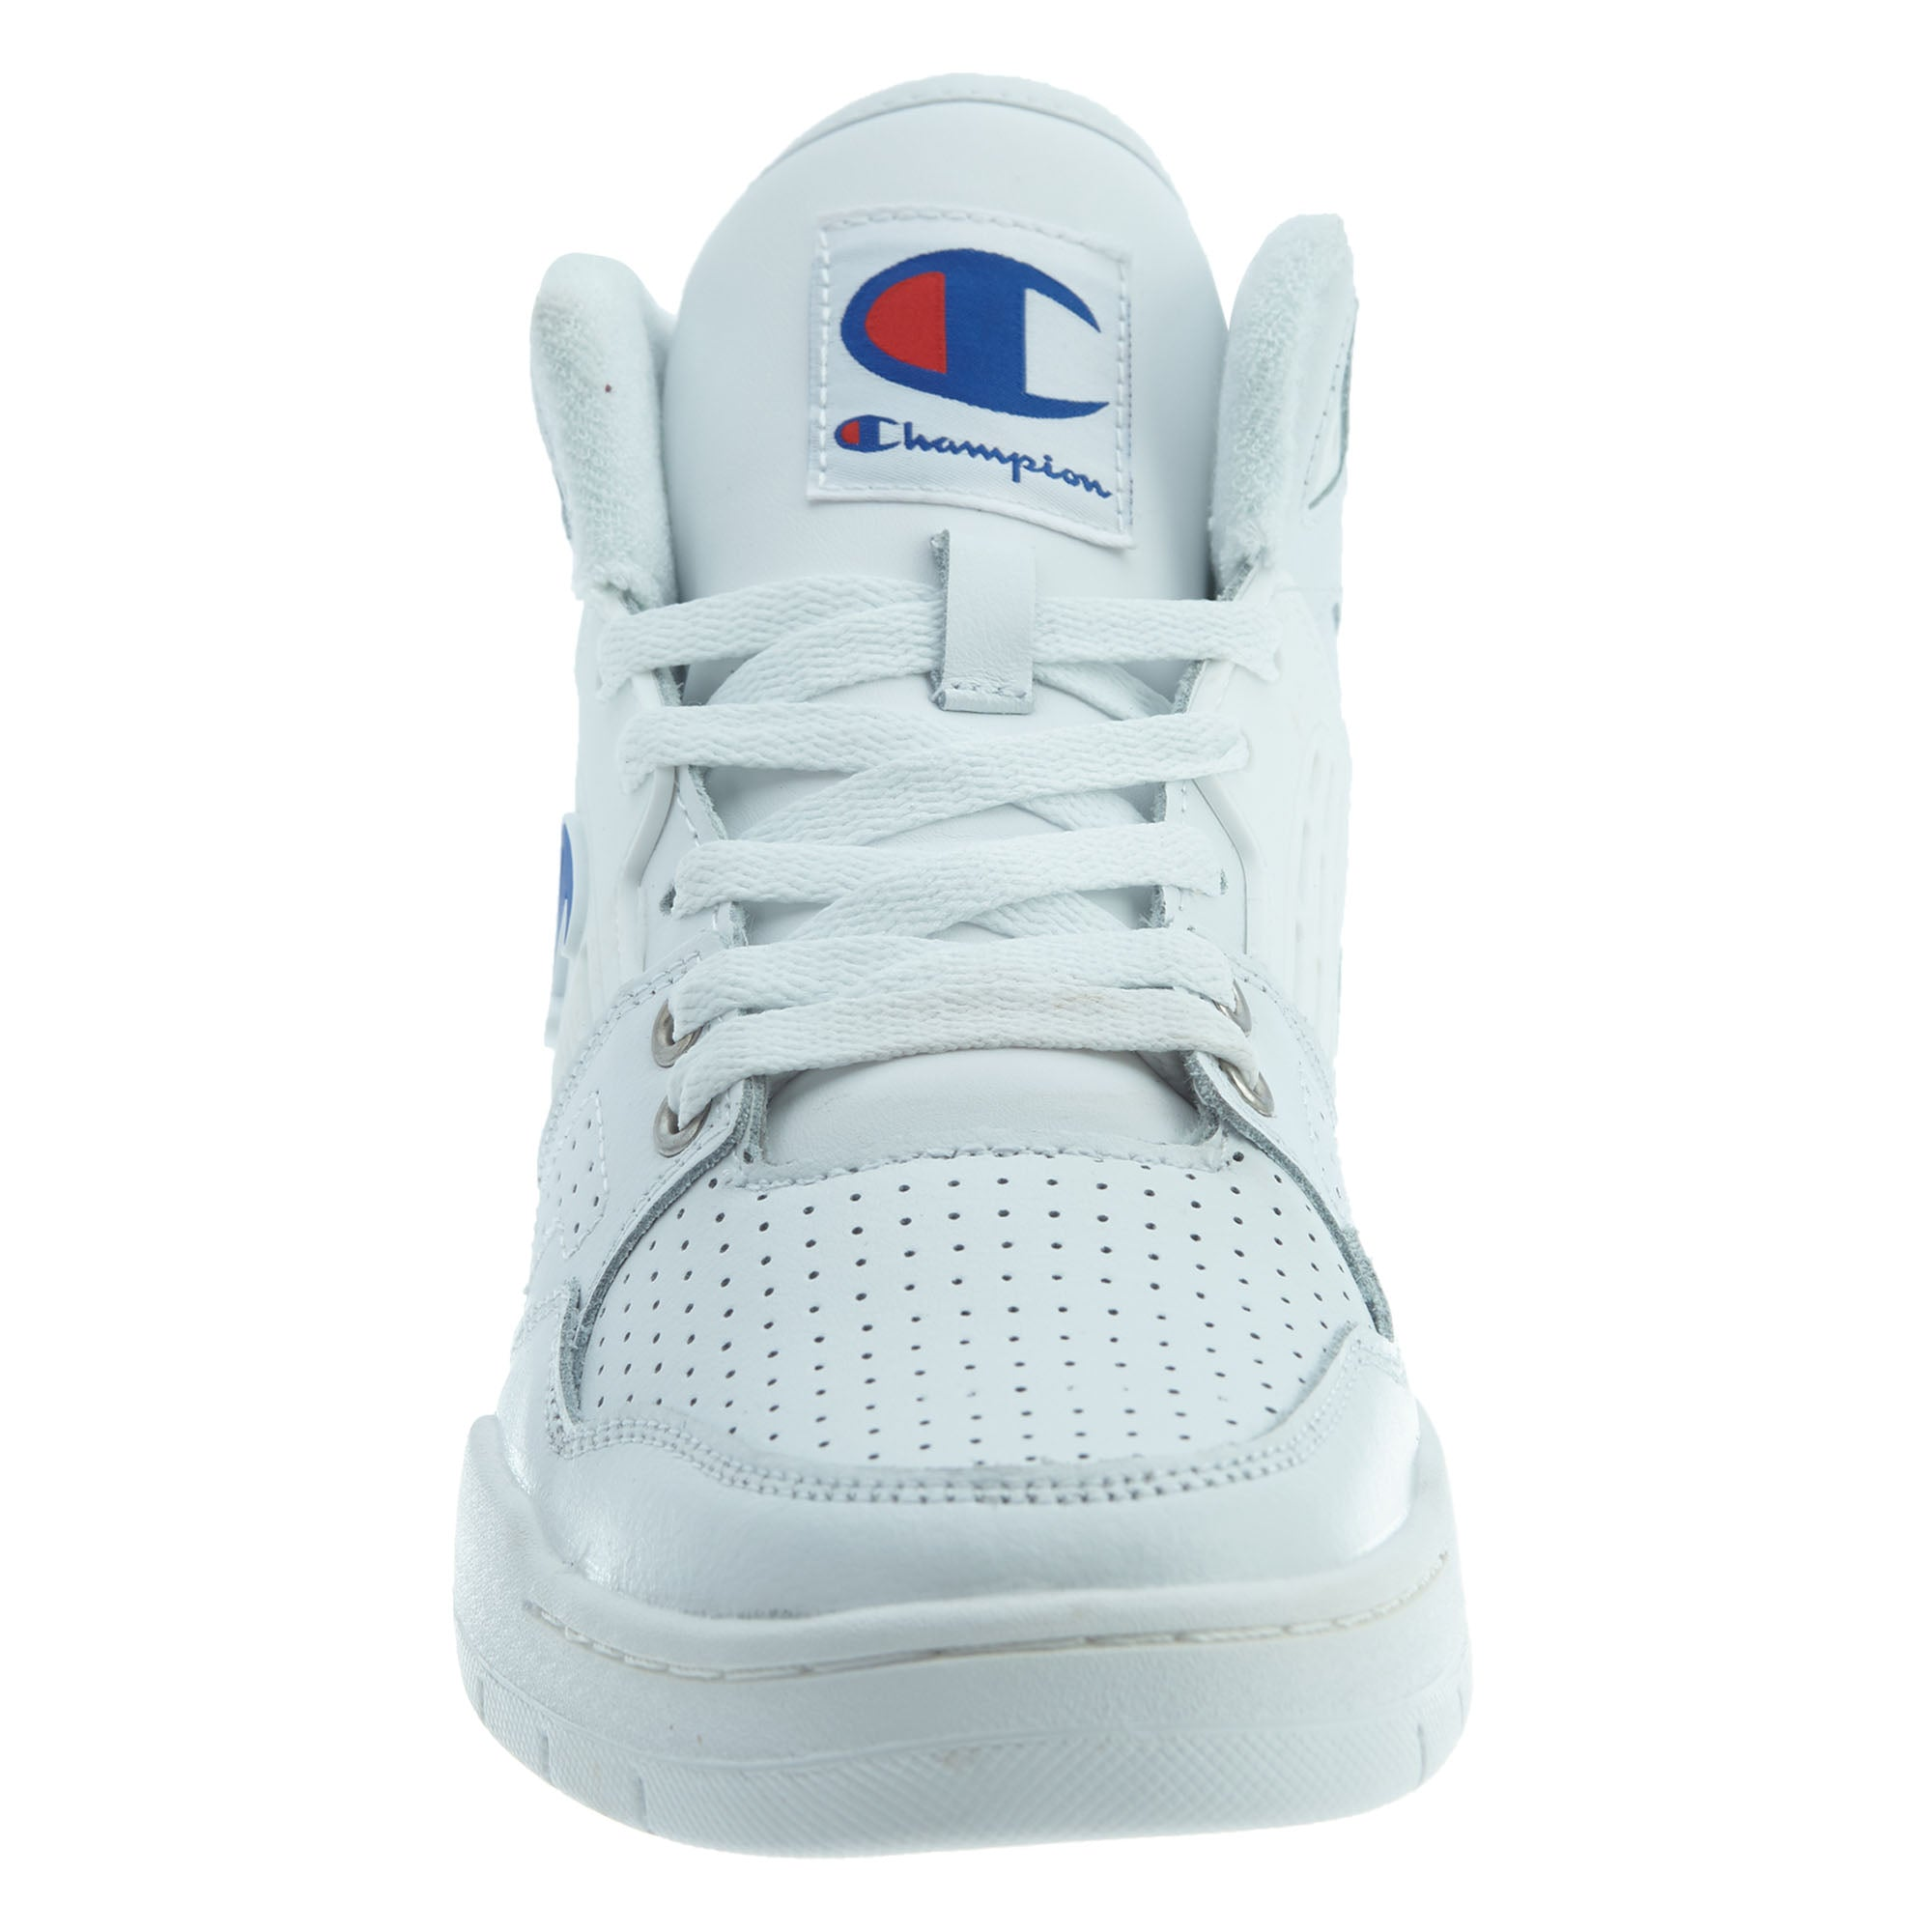 1b16164492d91 ... 3 Mens Style   Cm100122-White. CHAMPION   Athletic Shoes   Sneakers